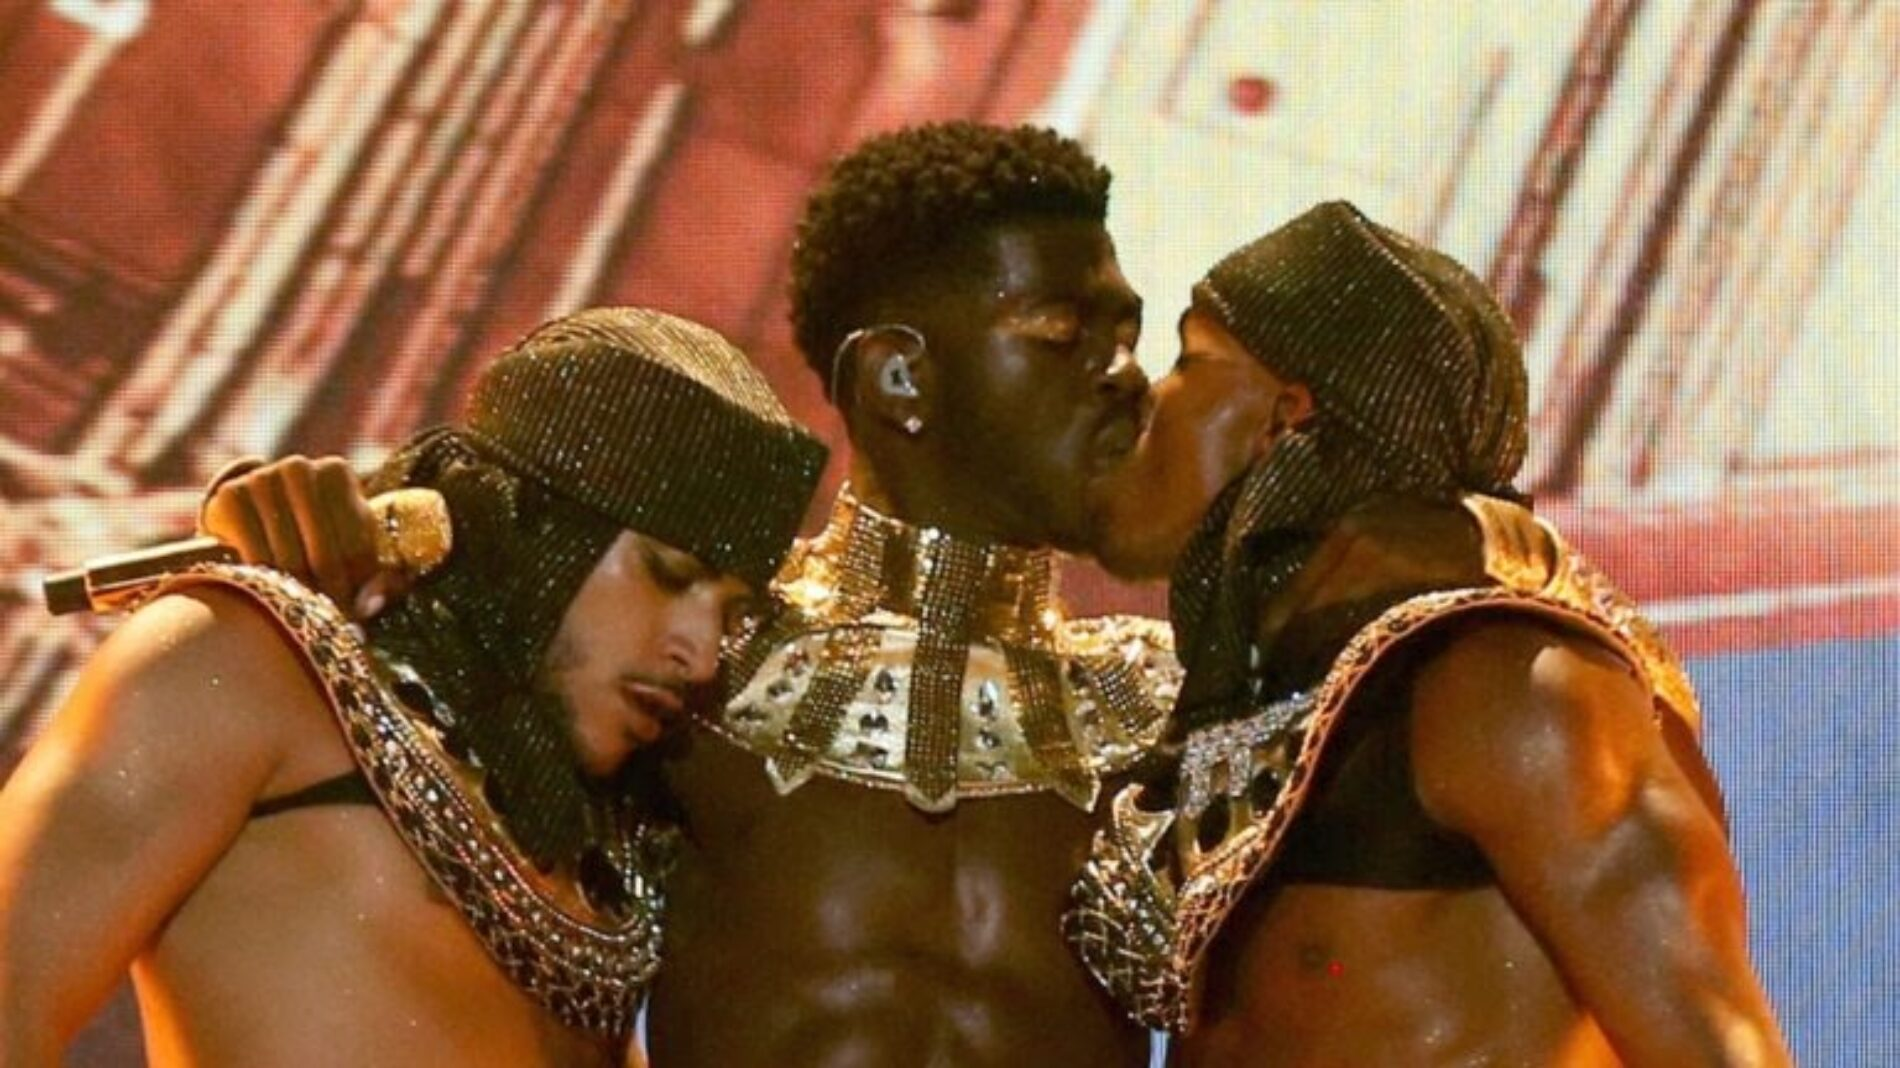 Lil Nas X Fires Back At Criticism Over Him Kissing Male Dancer at BET Awards